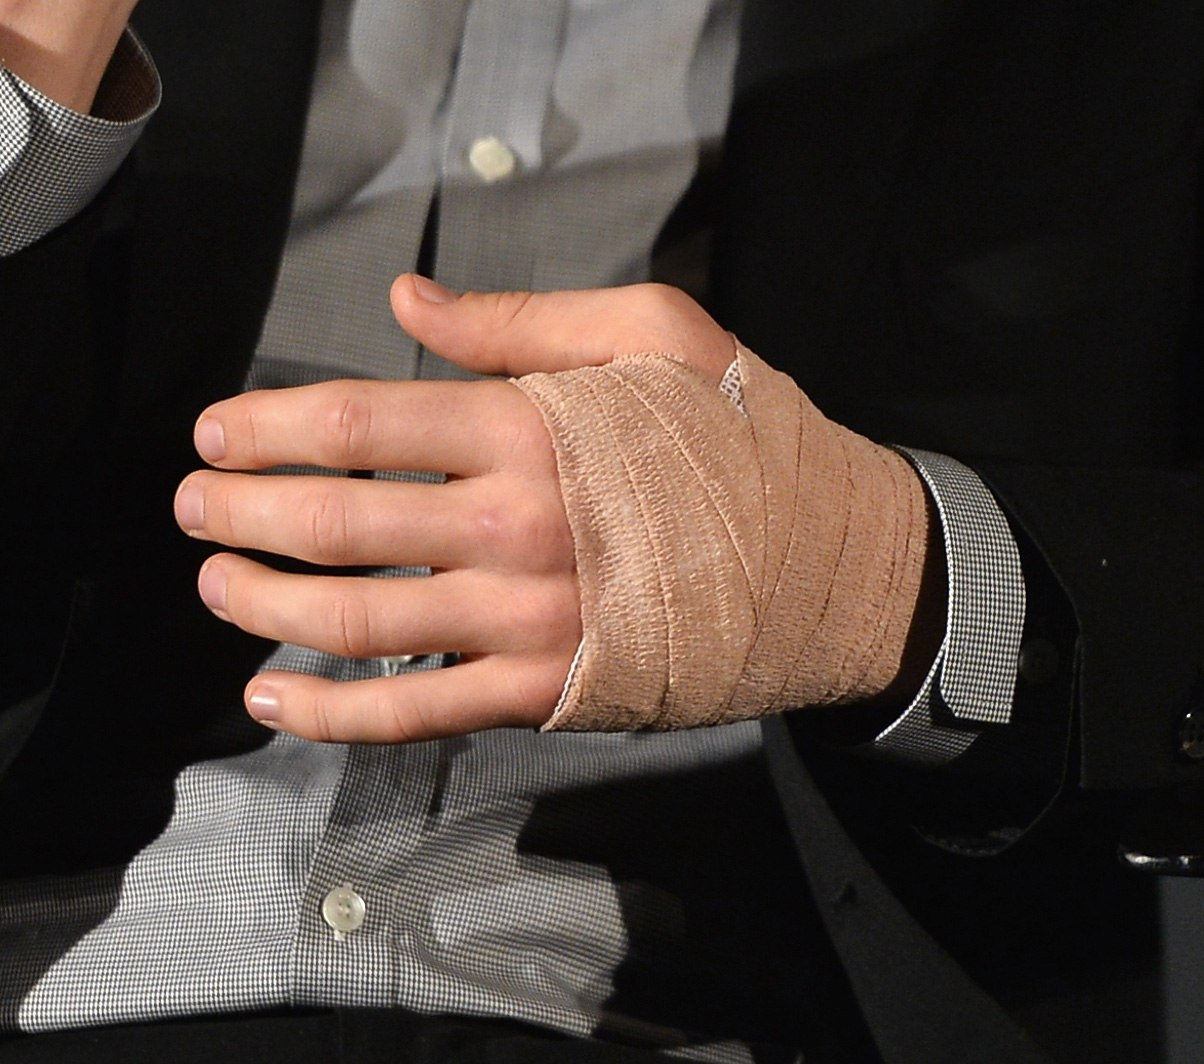 Man with his hand tied up